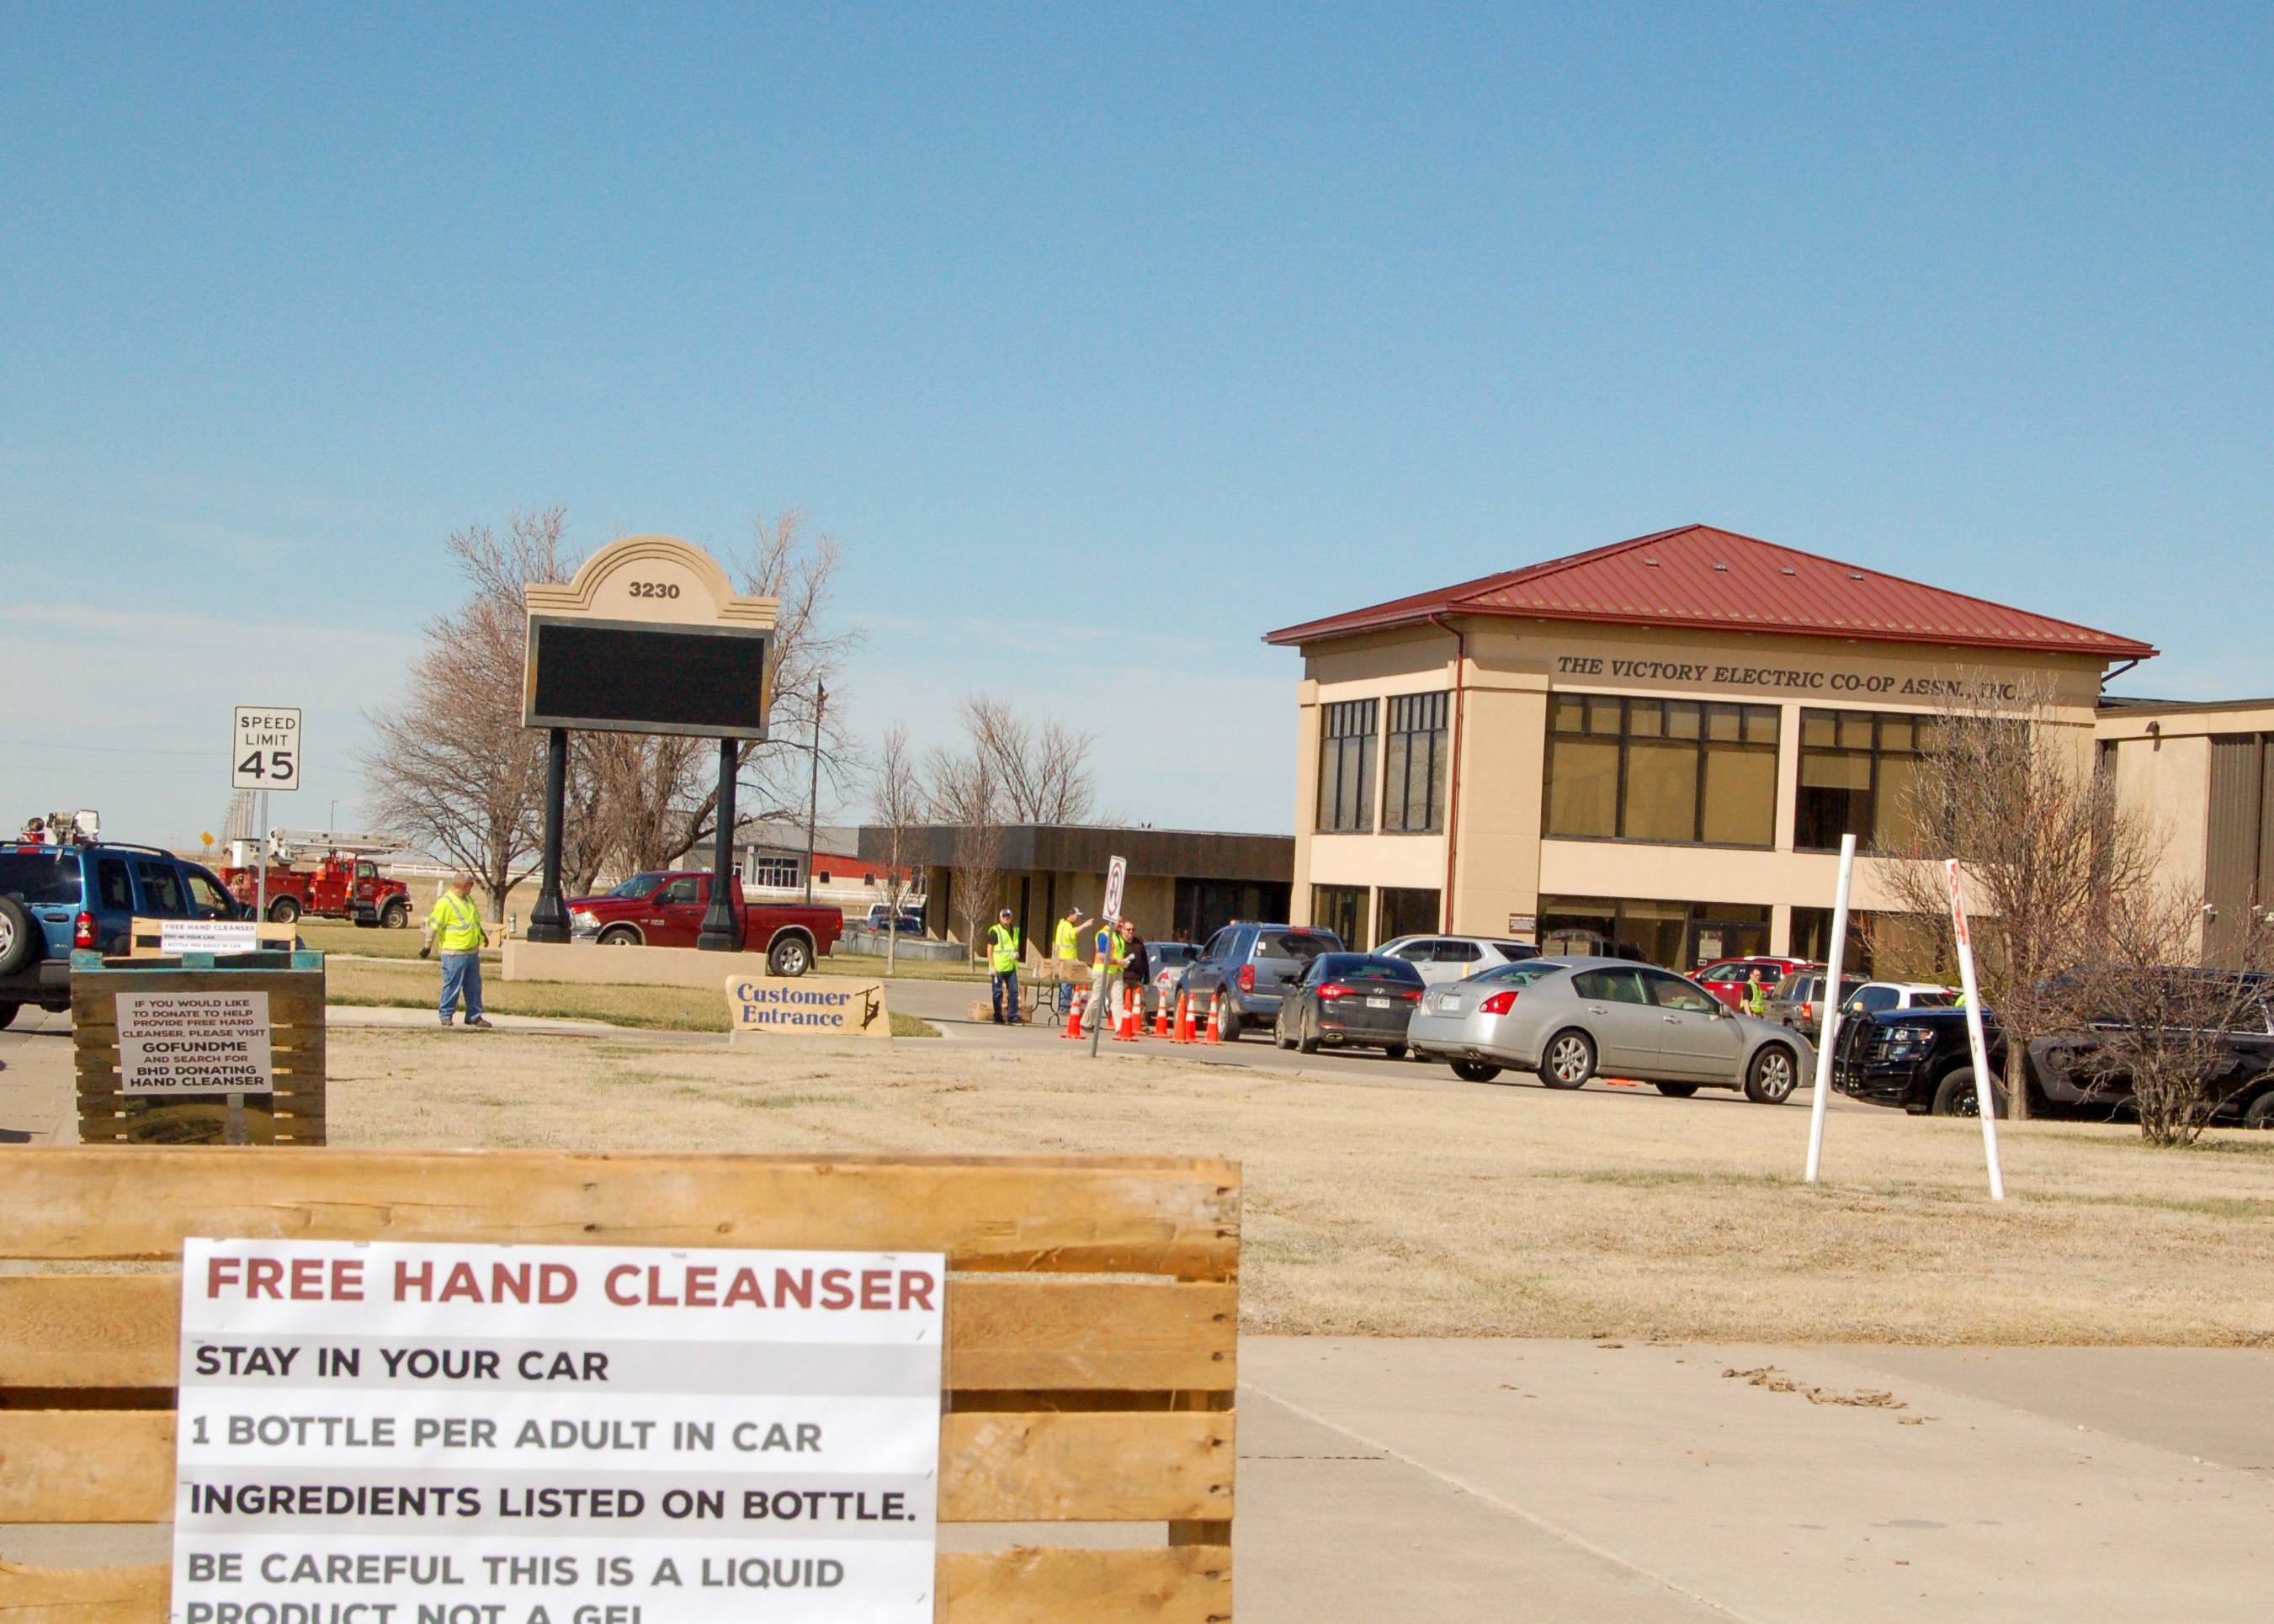 Free hand sanitizer at Victory Electric Cooperative